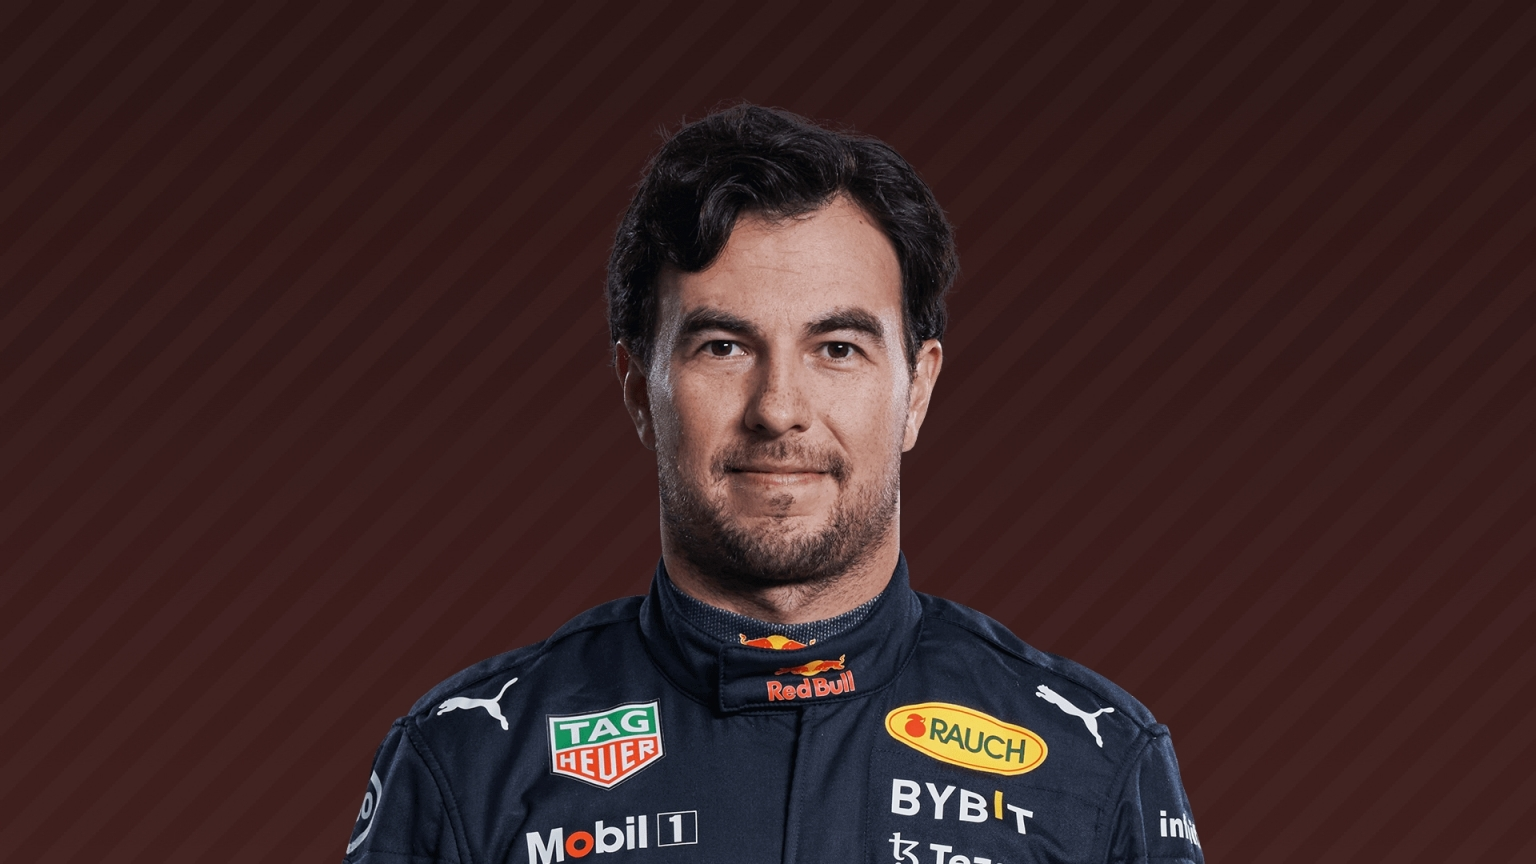 Sergio Perez F1 Driver For Racing Point